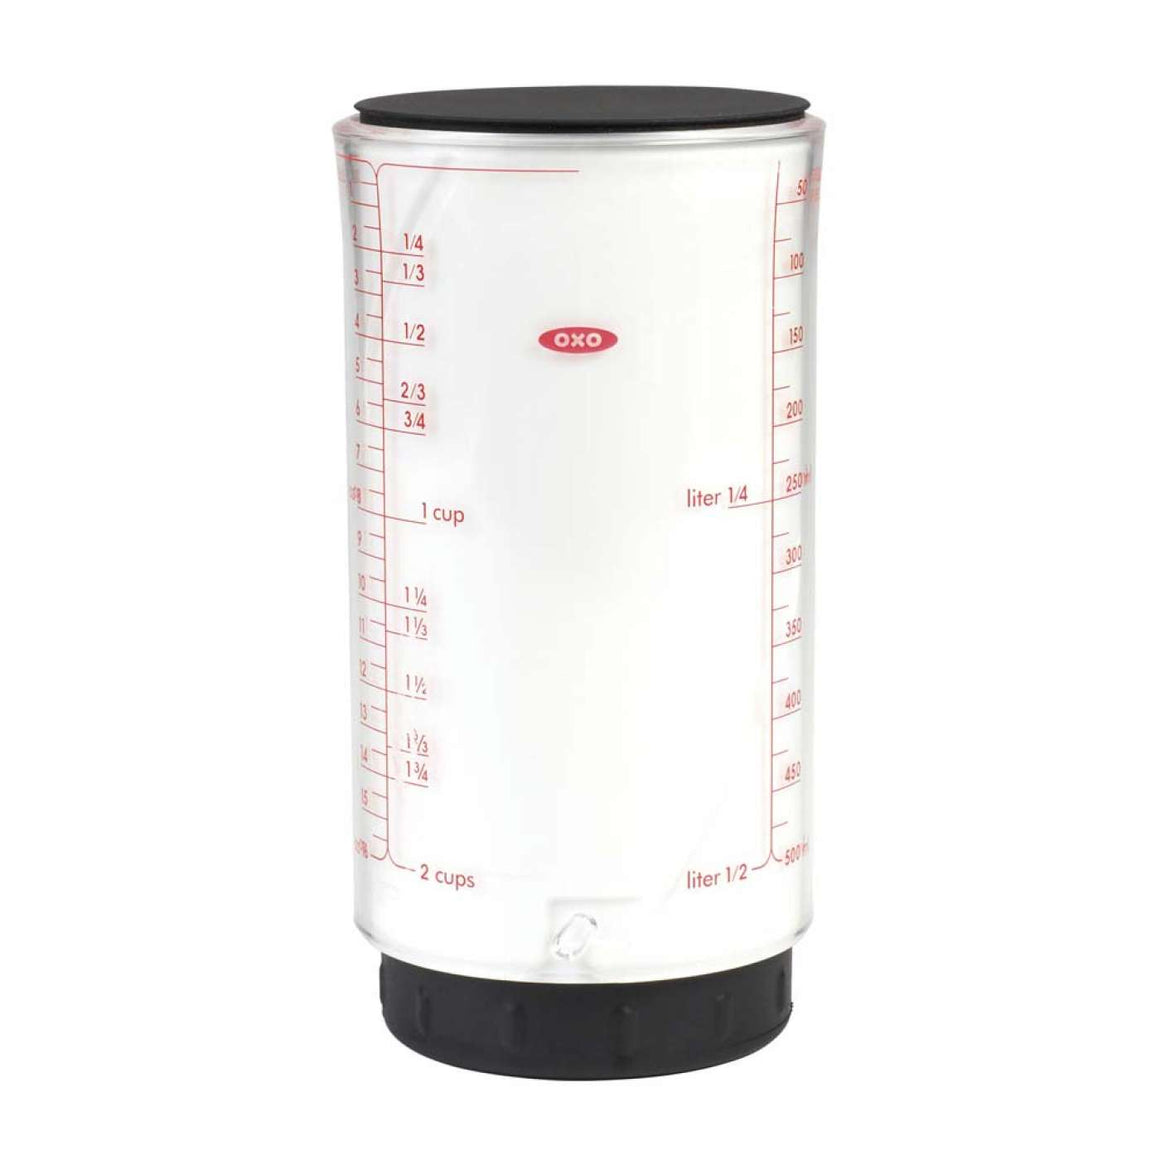 Good Grips Adjustable Measuring Cup - 2 cup